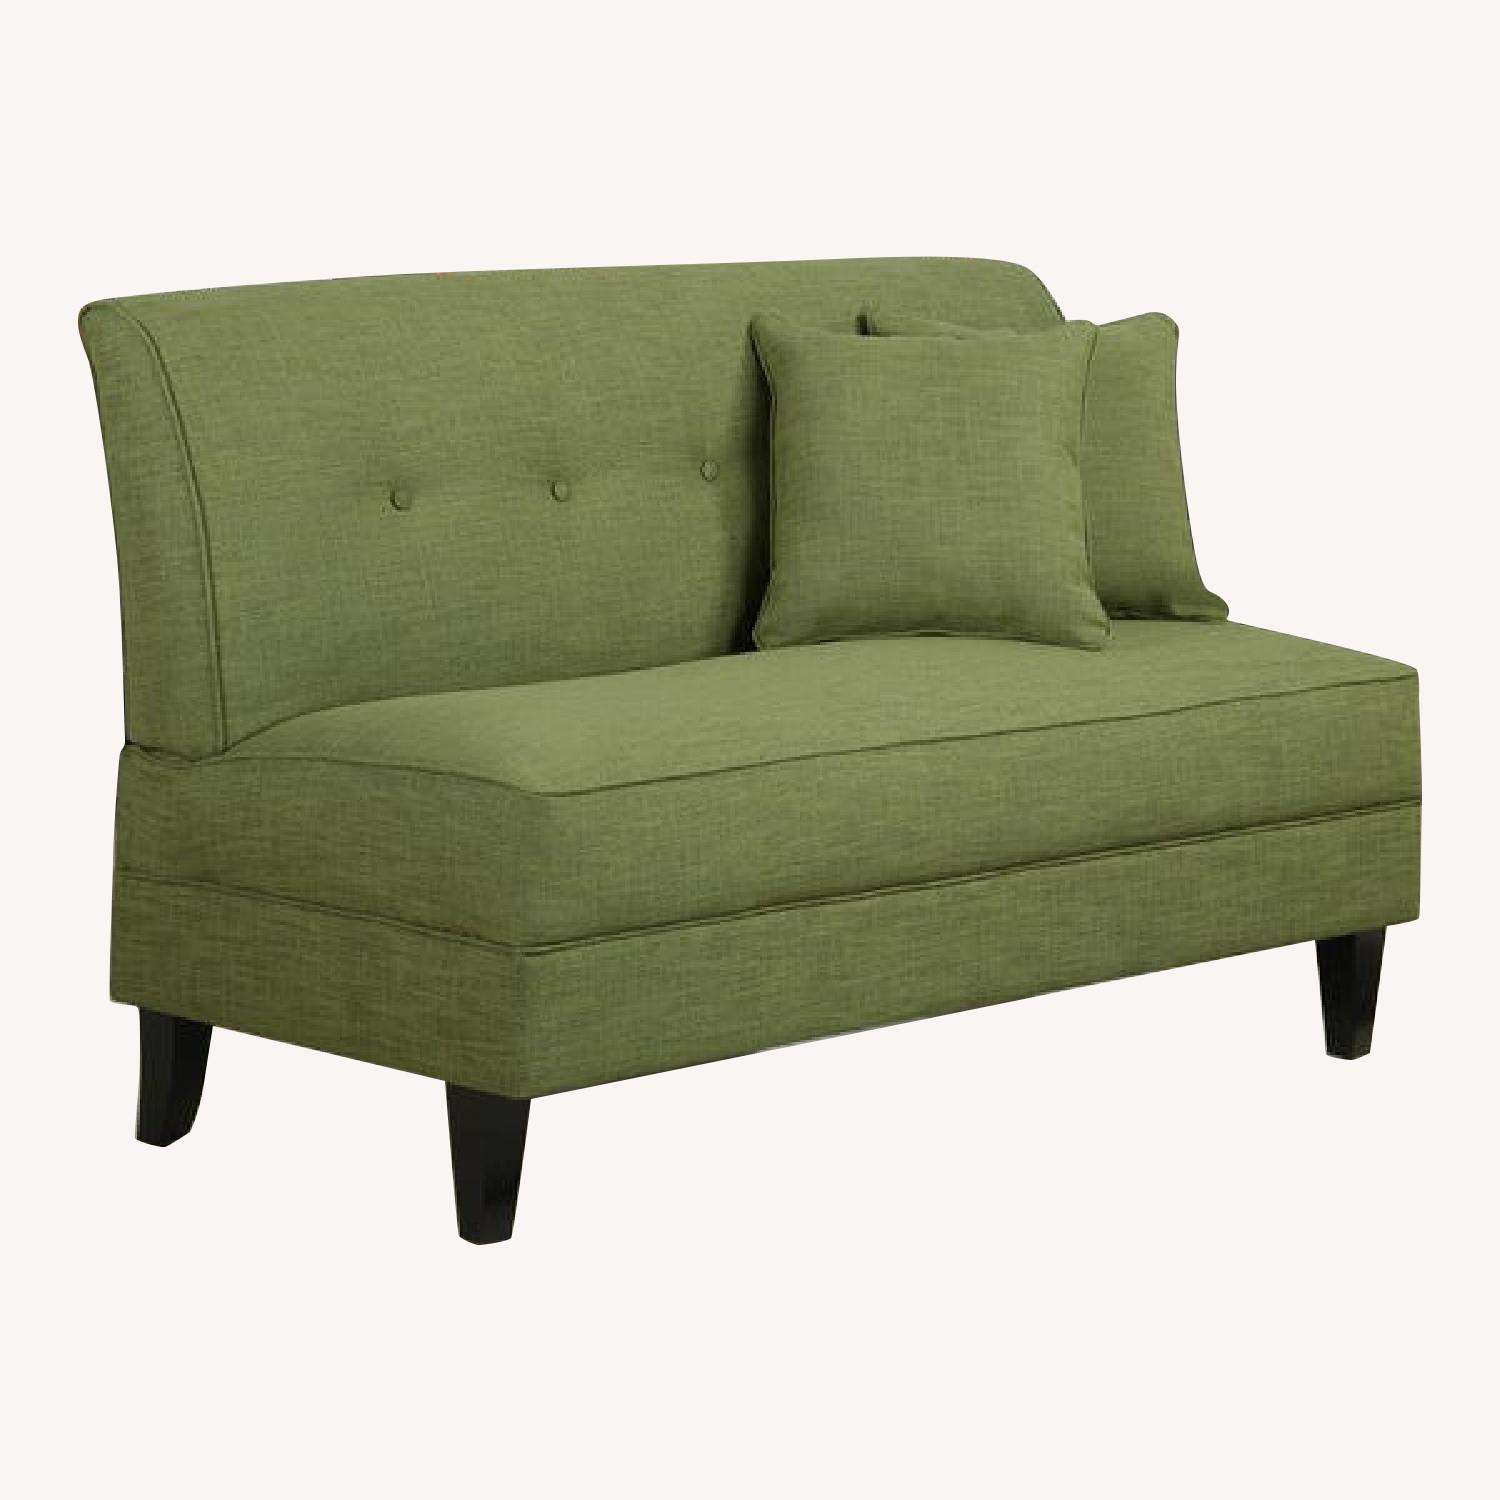 Porch & Den Pope Street Apple Green Armless Loveseat - image-0